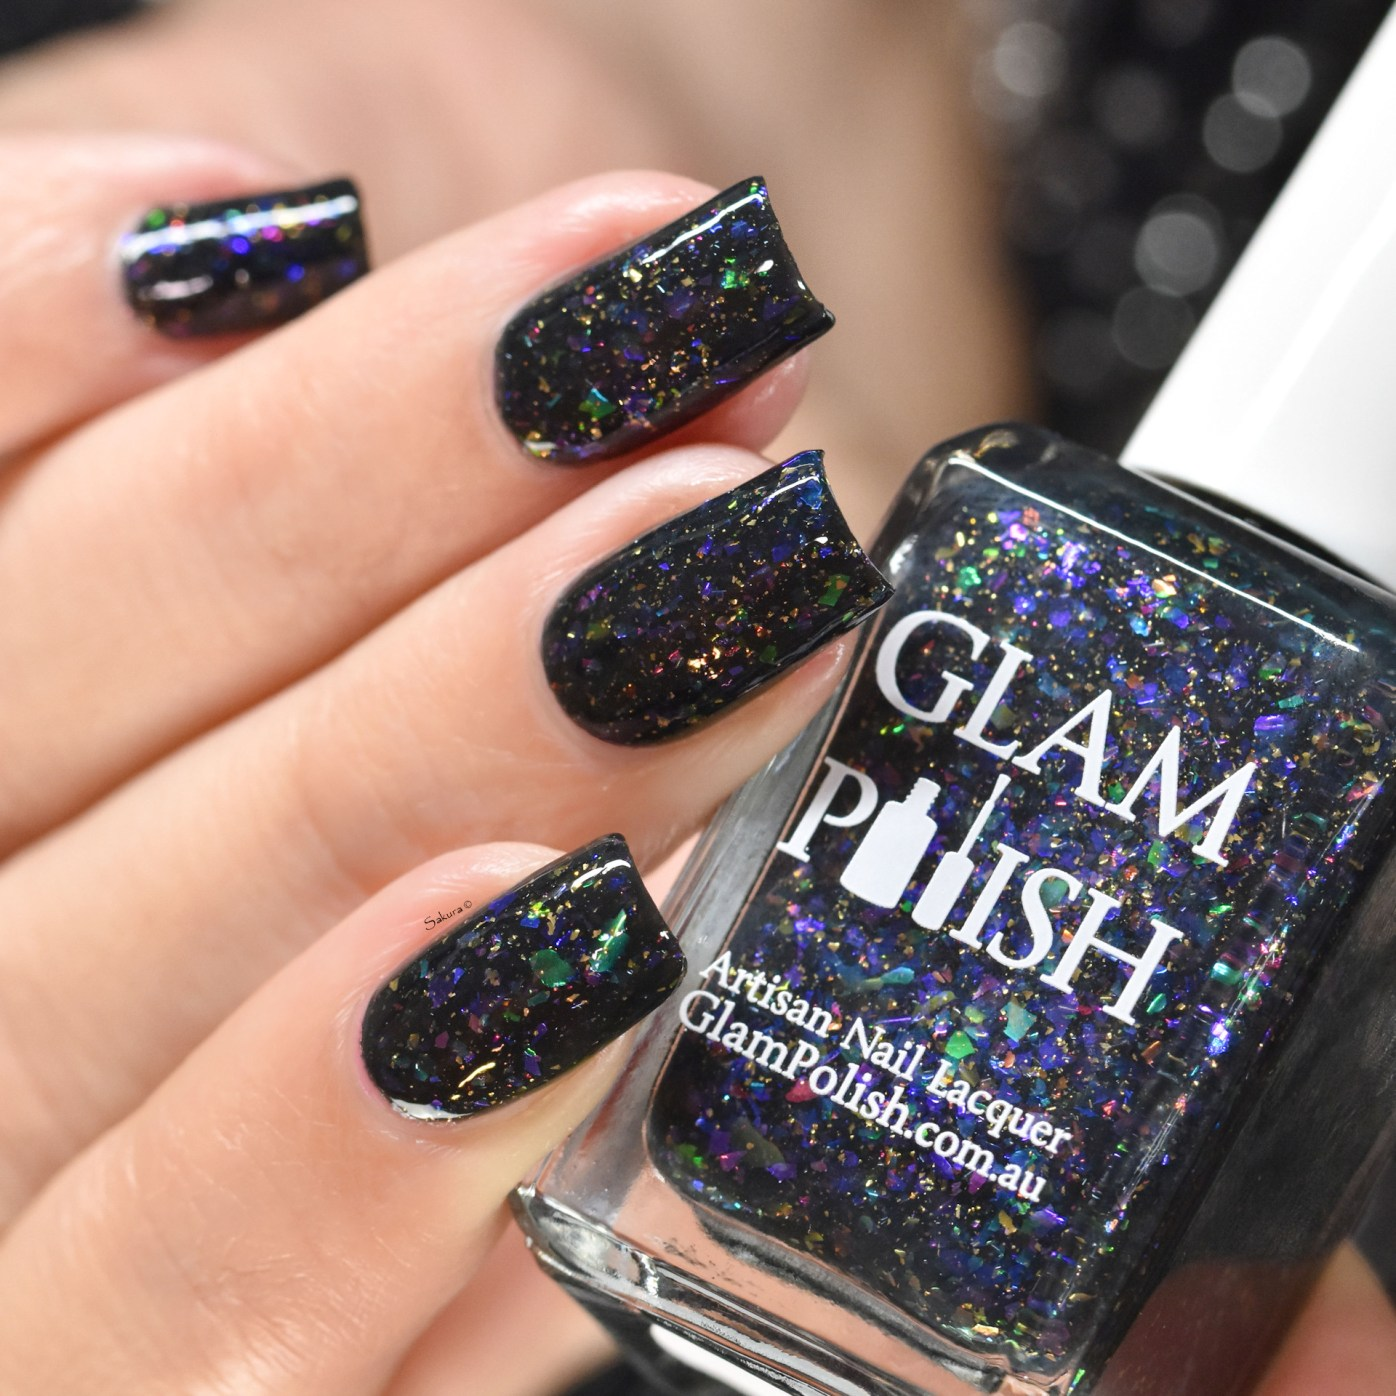 GLAMPOLISH Apparate 2